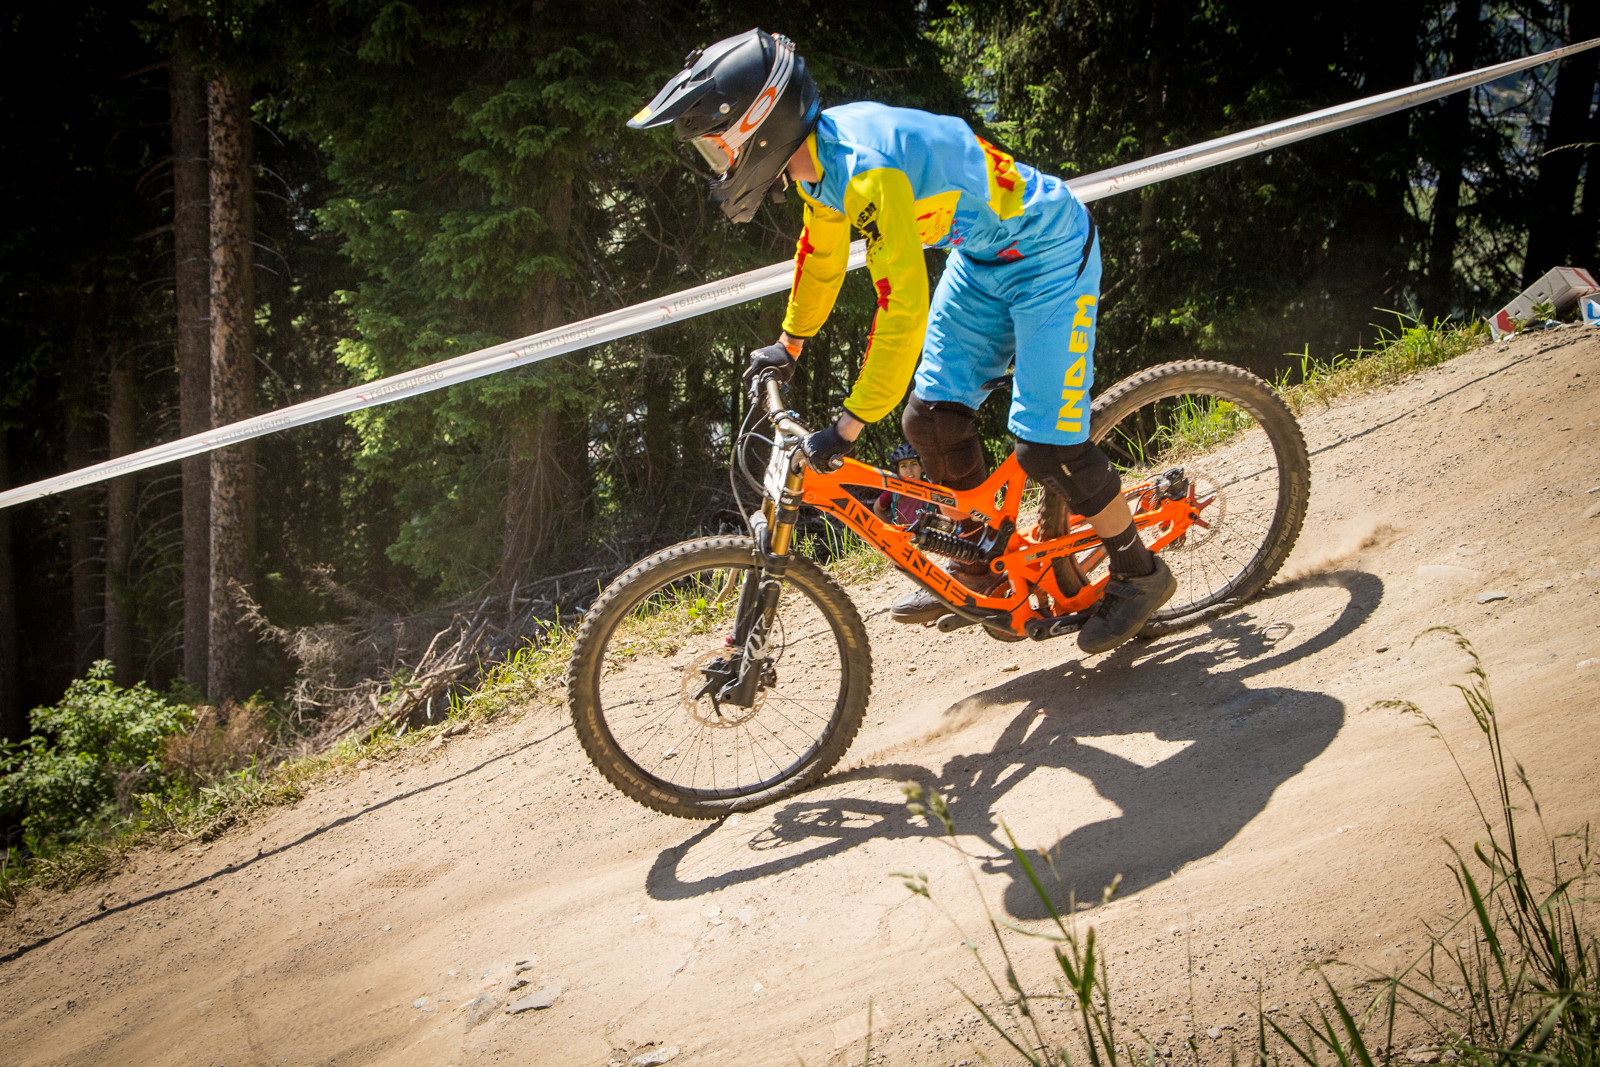 G-Out Project, Lenzerheide World Cup, Intense 951 EVO - G-Out Project - Lenzerheide World Cup - Mountain Biking Pictures - Vital MTB